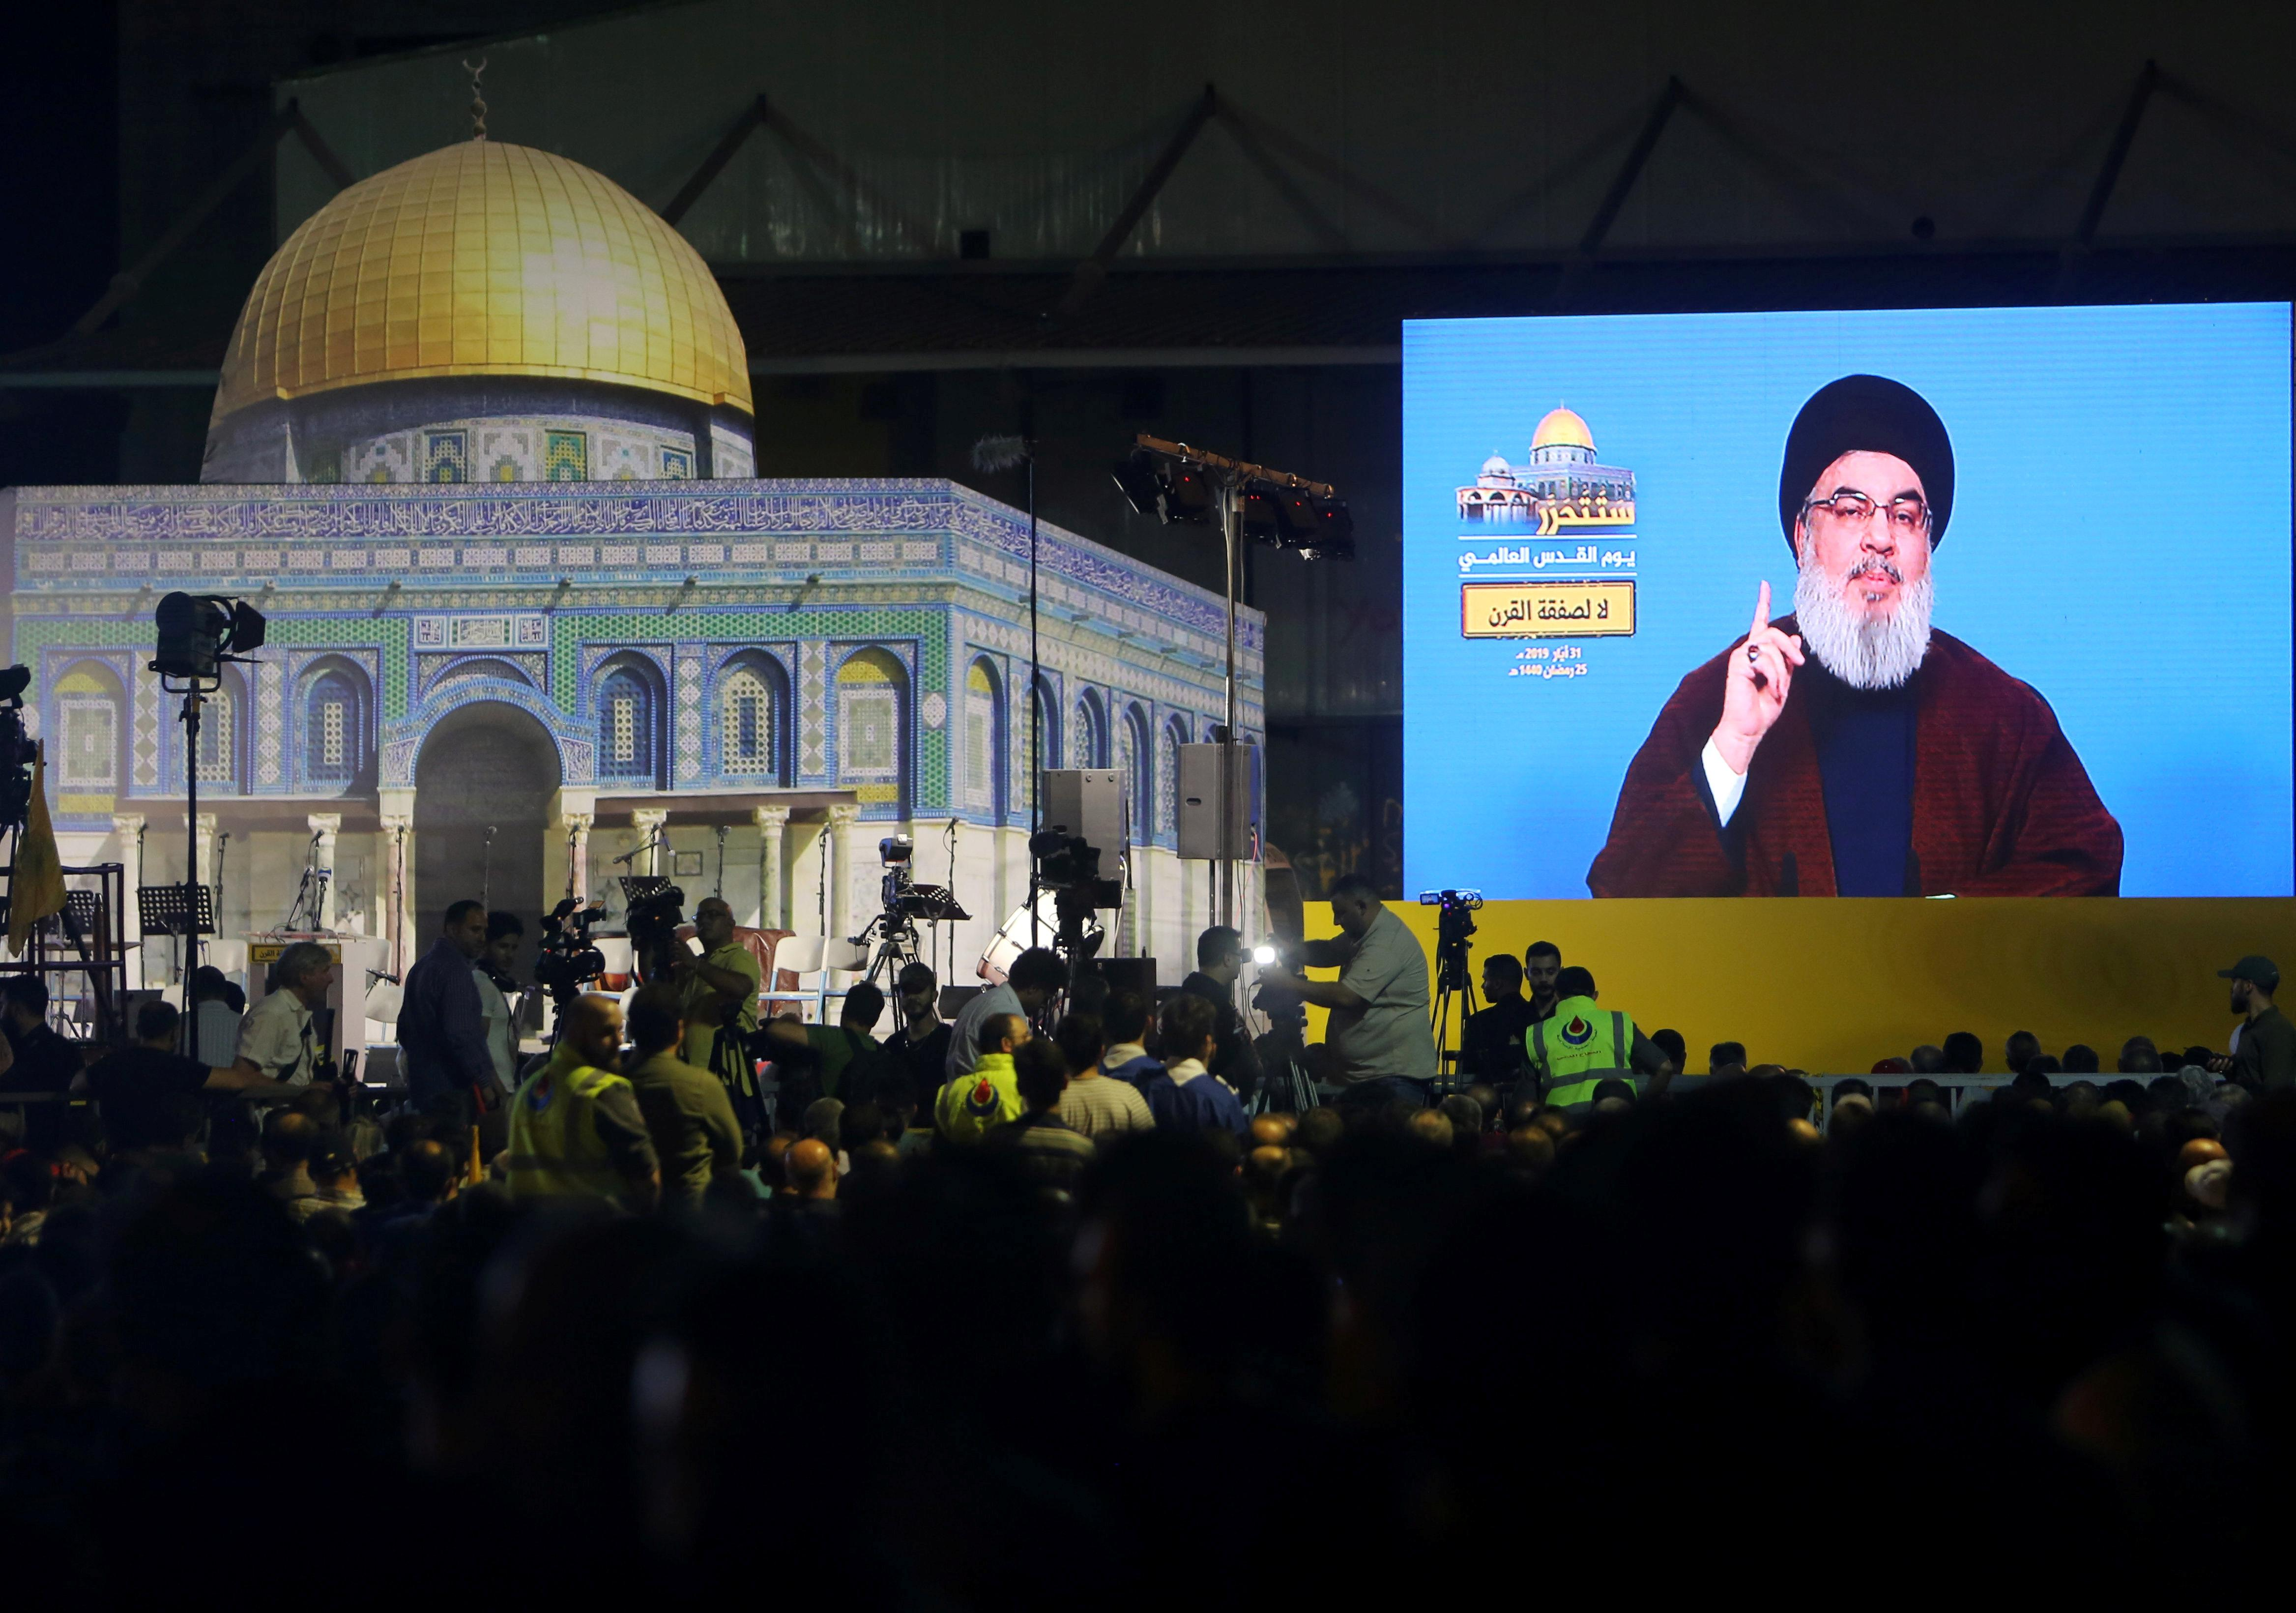 Lebanon's Hezbollah says does not want government to resign